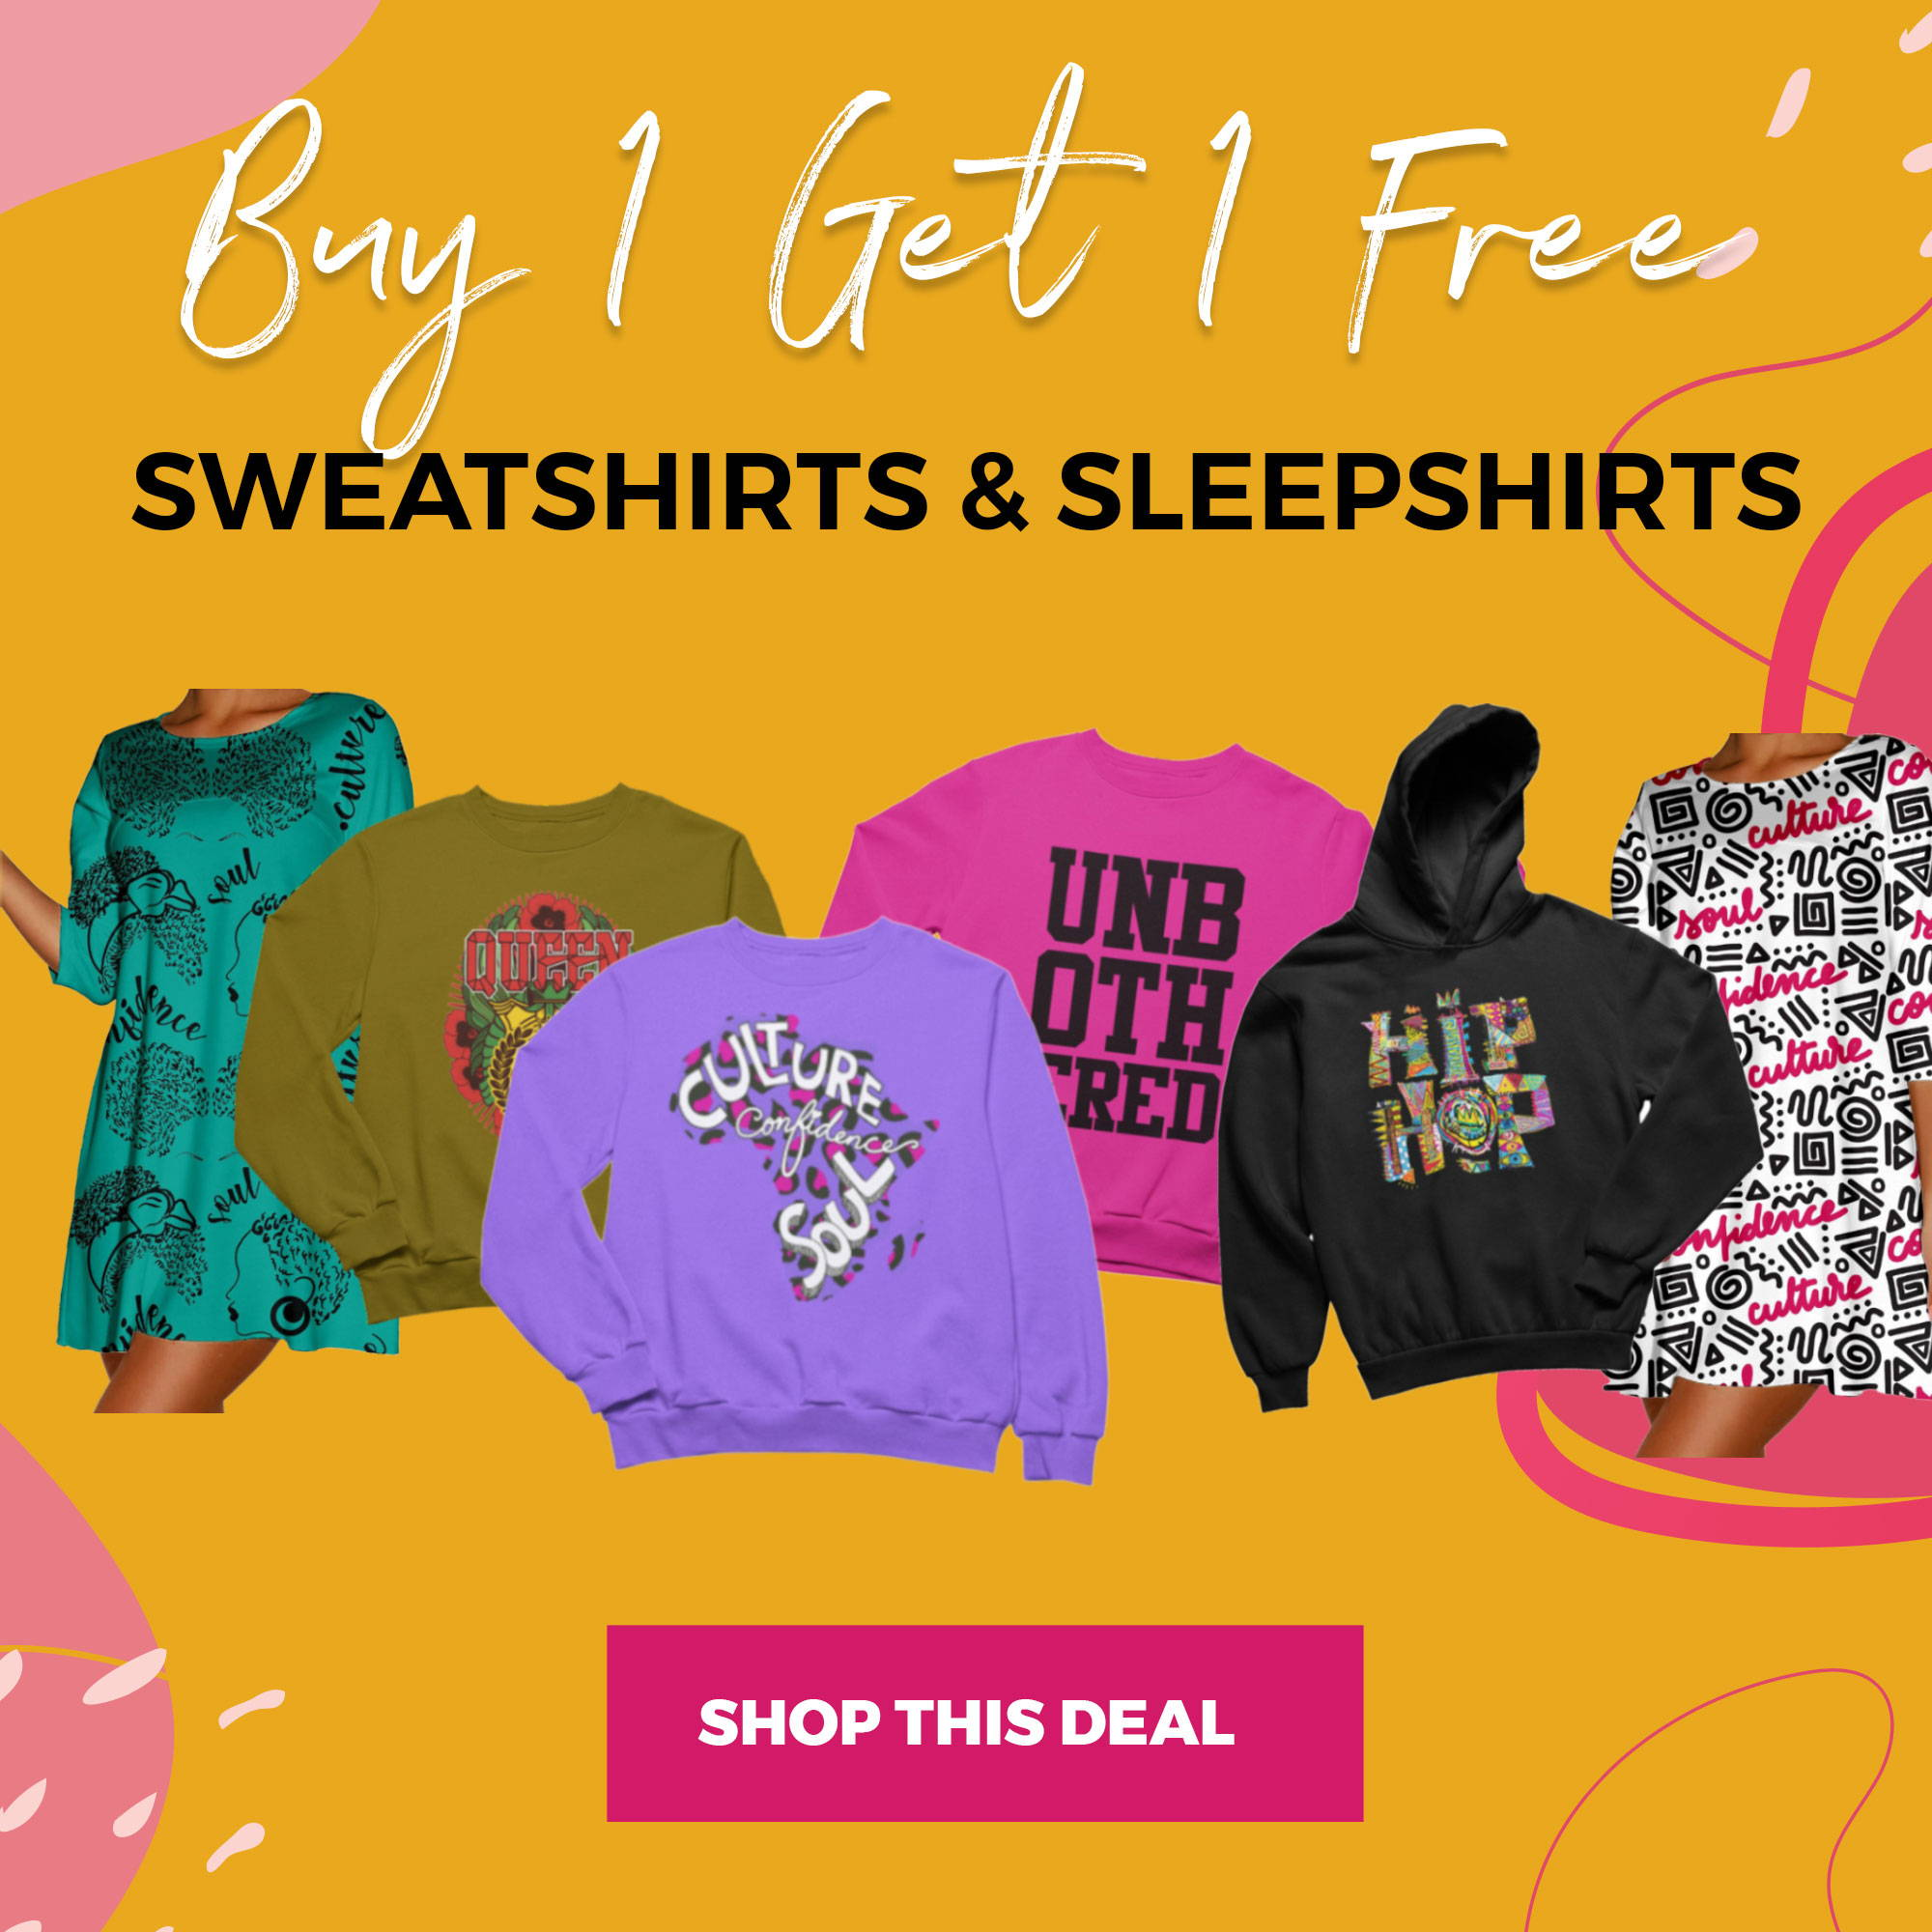 Buy 1 Get 1 Free Select Items!